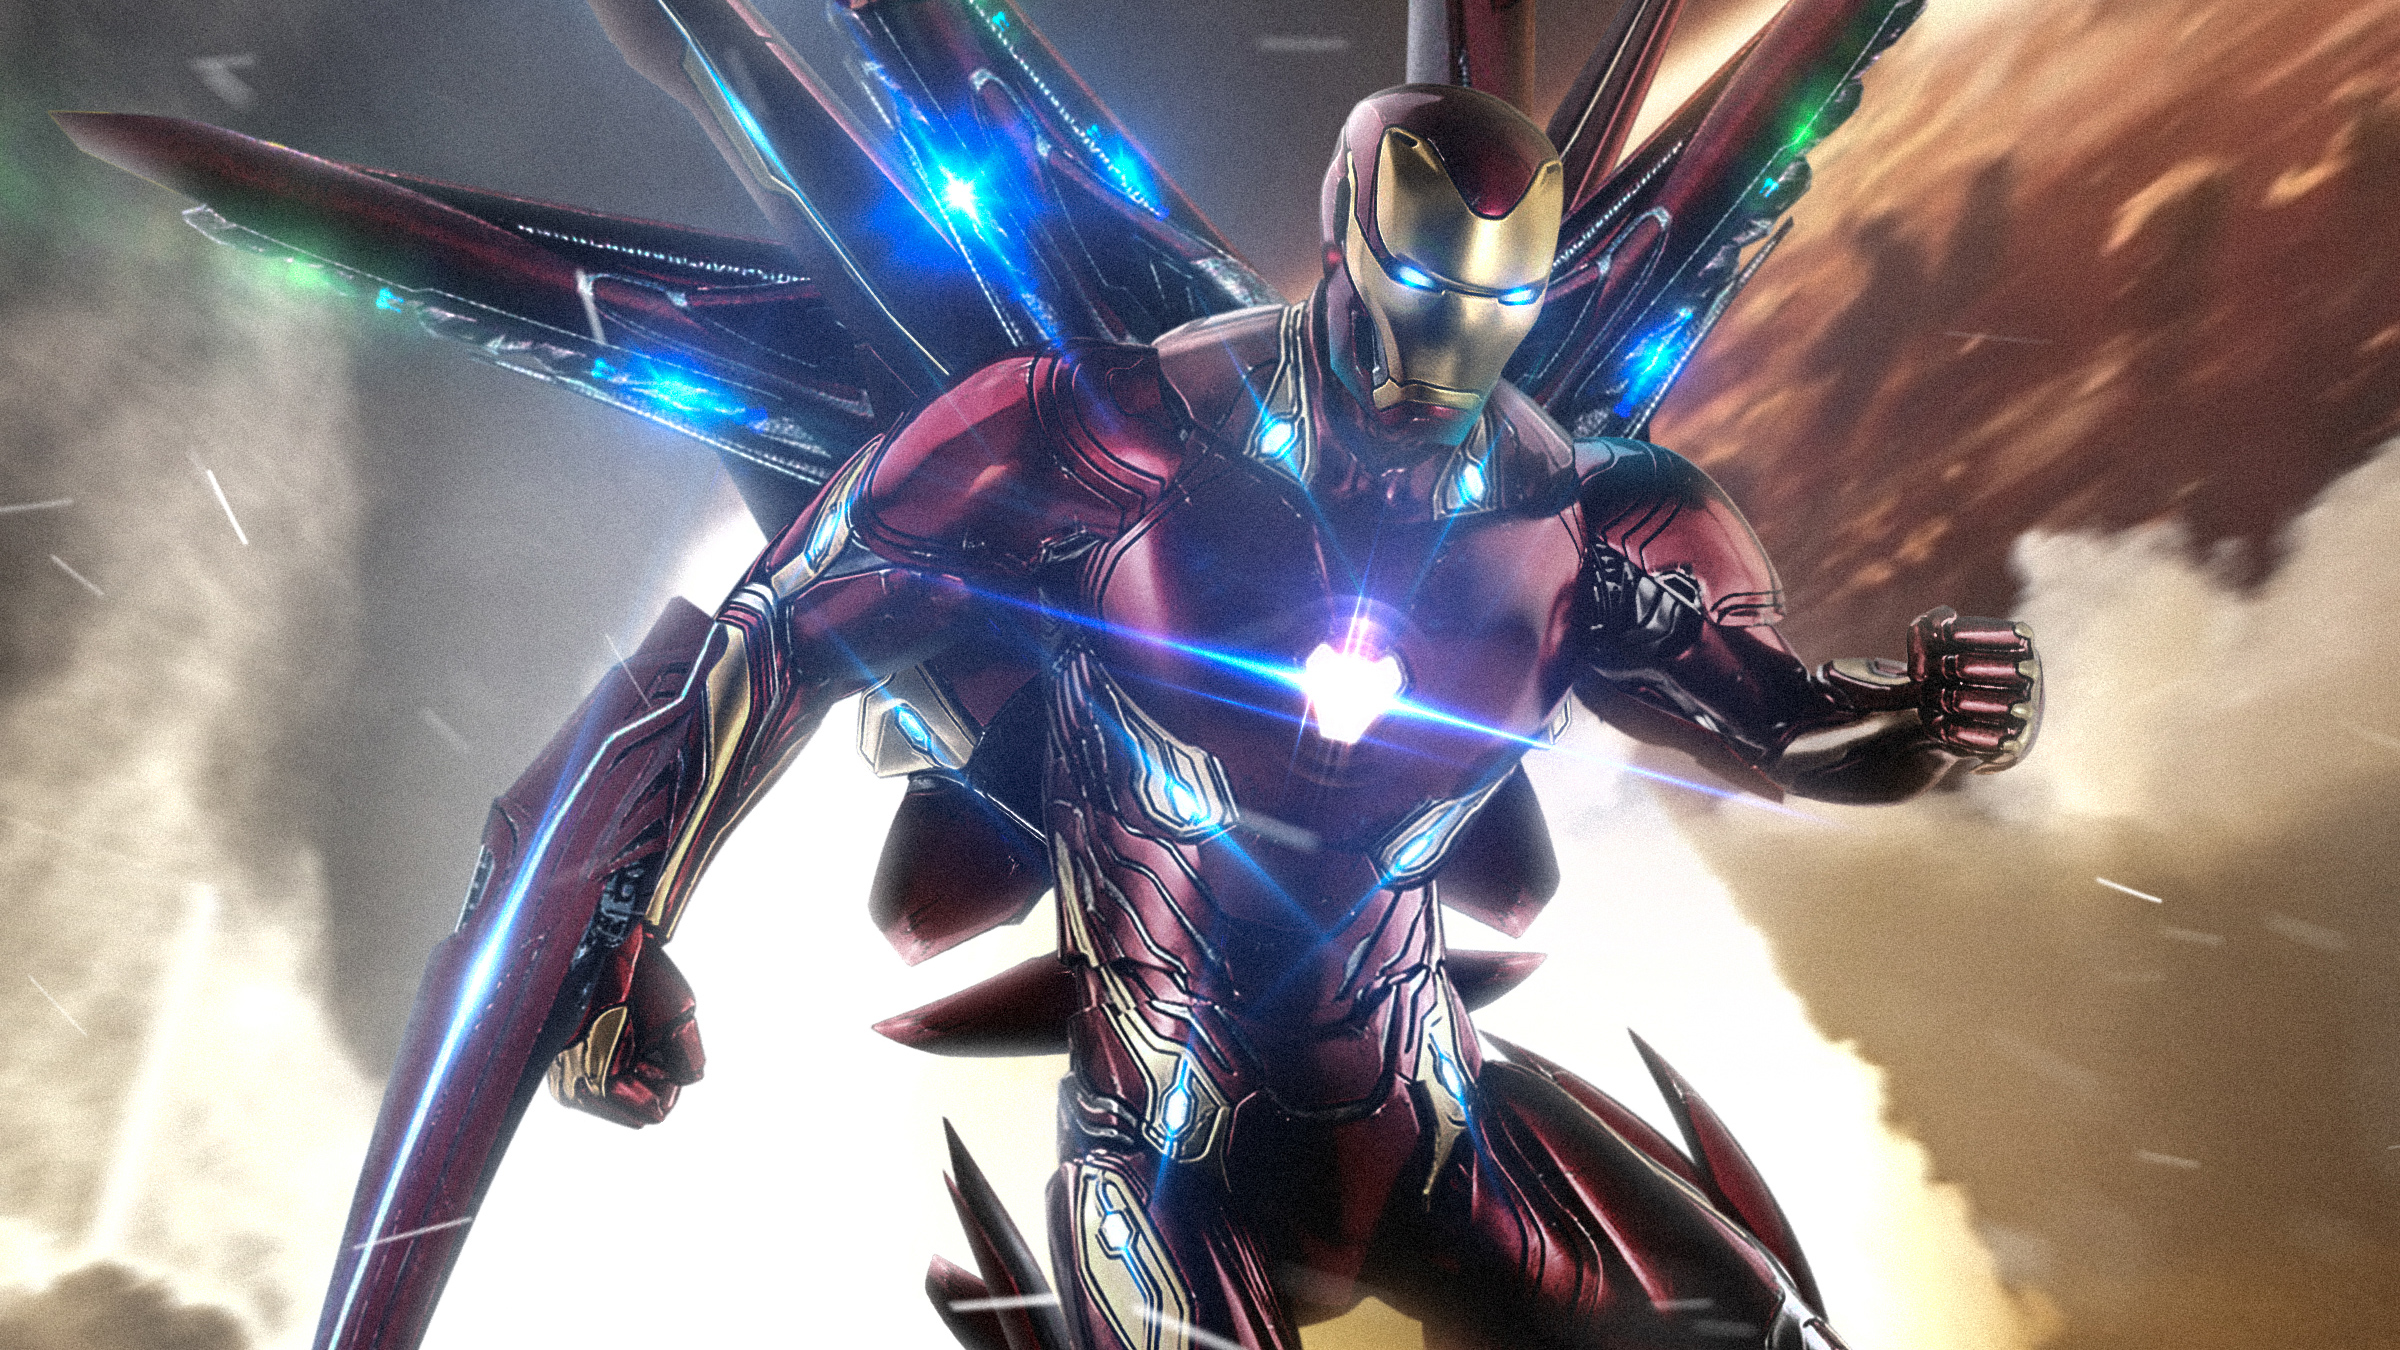 Iron Man New Suit Art Hd Superheroes 4k Wallpapers Images